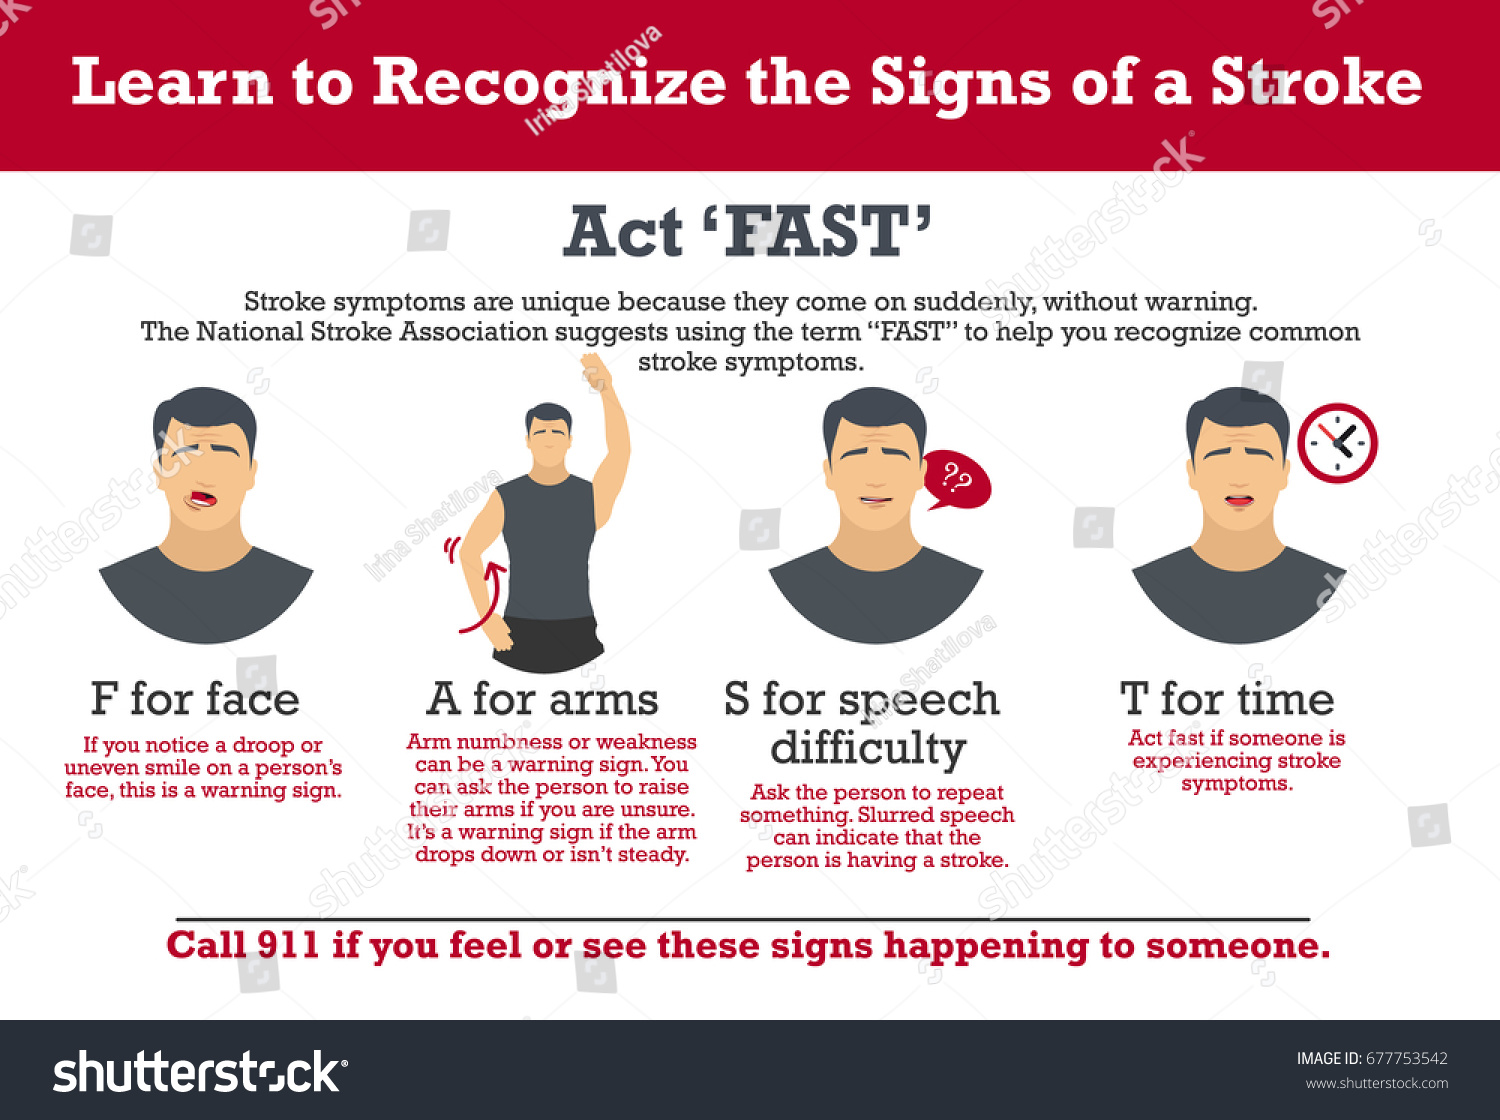 How to Recognize the Signs and Symptoms of a Stroke